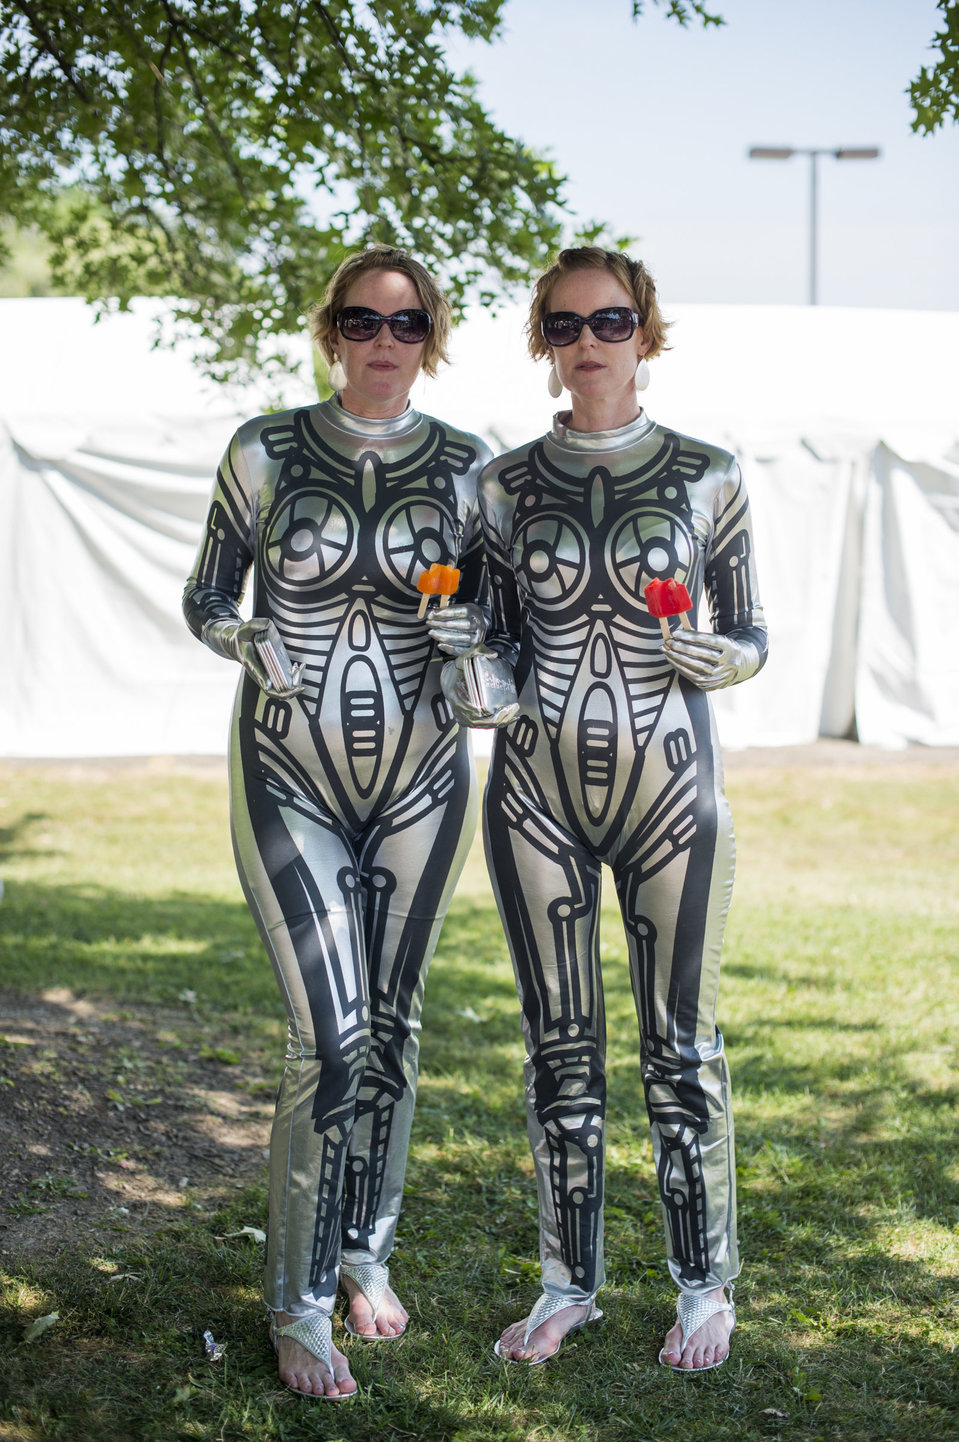 Heather and Tara Kelly, 42, pose dressed as robots during the Twins Days Festival in Twinsberg, Ohio on Saturday, August 8, 2015. Heather is from Berkely, California while her sister lives in Washington D.C. It is their first time at the festival. Photo by Dustin Franz